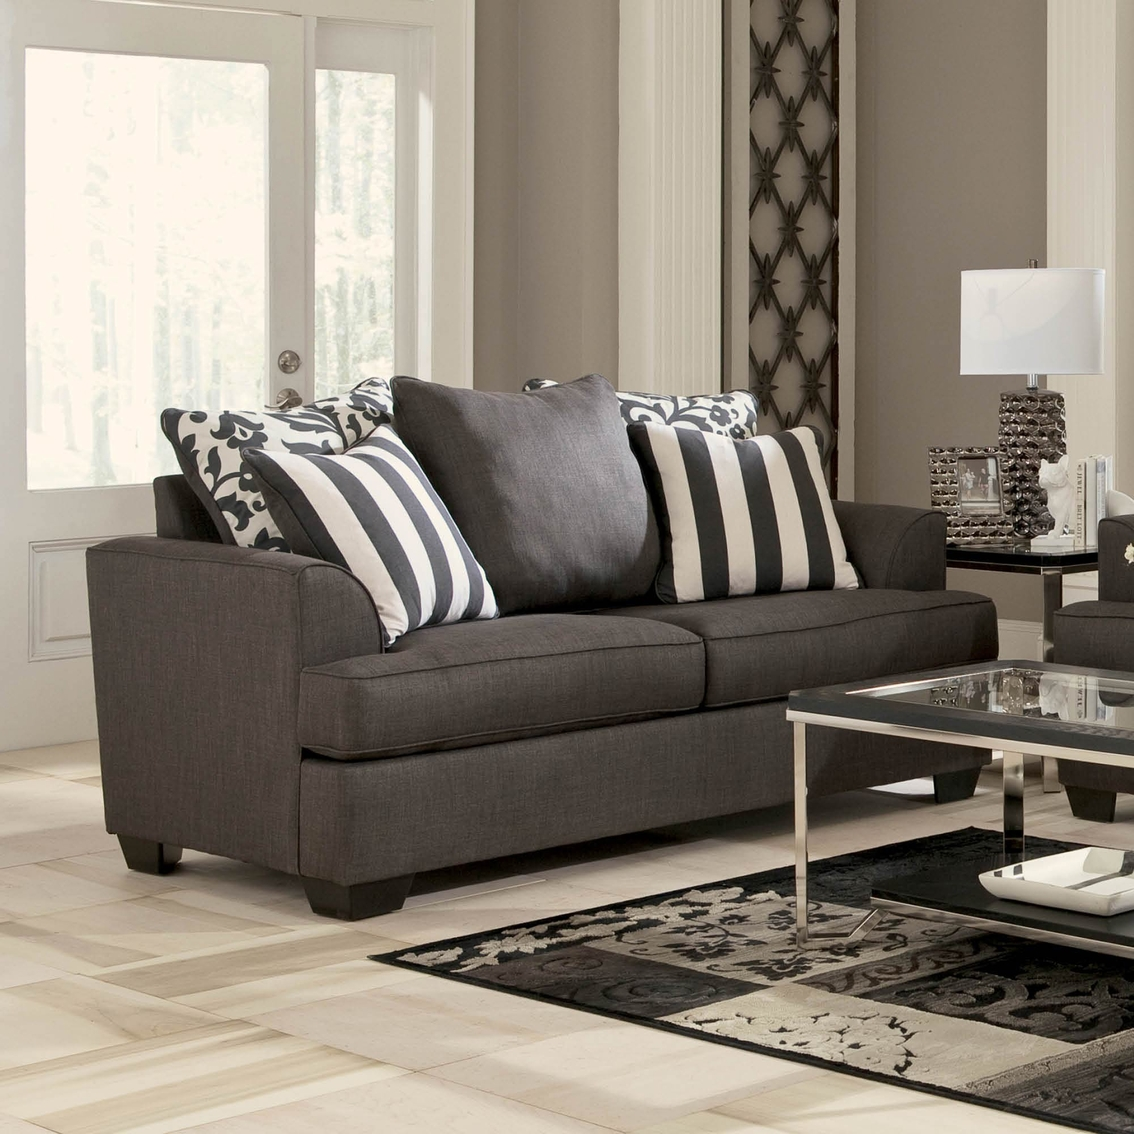 Signature Design By Ashley Levon Loveseat Charcoal